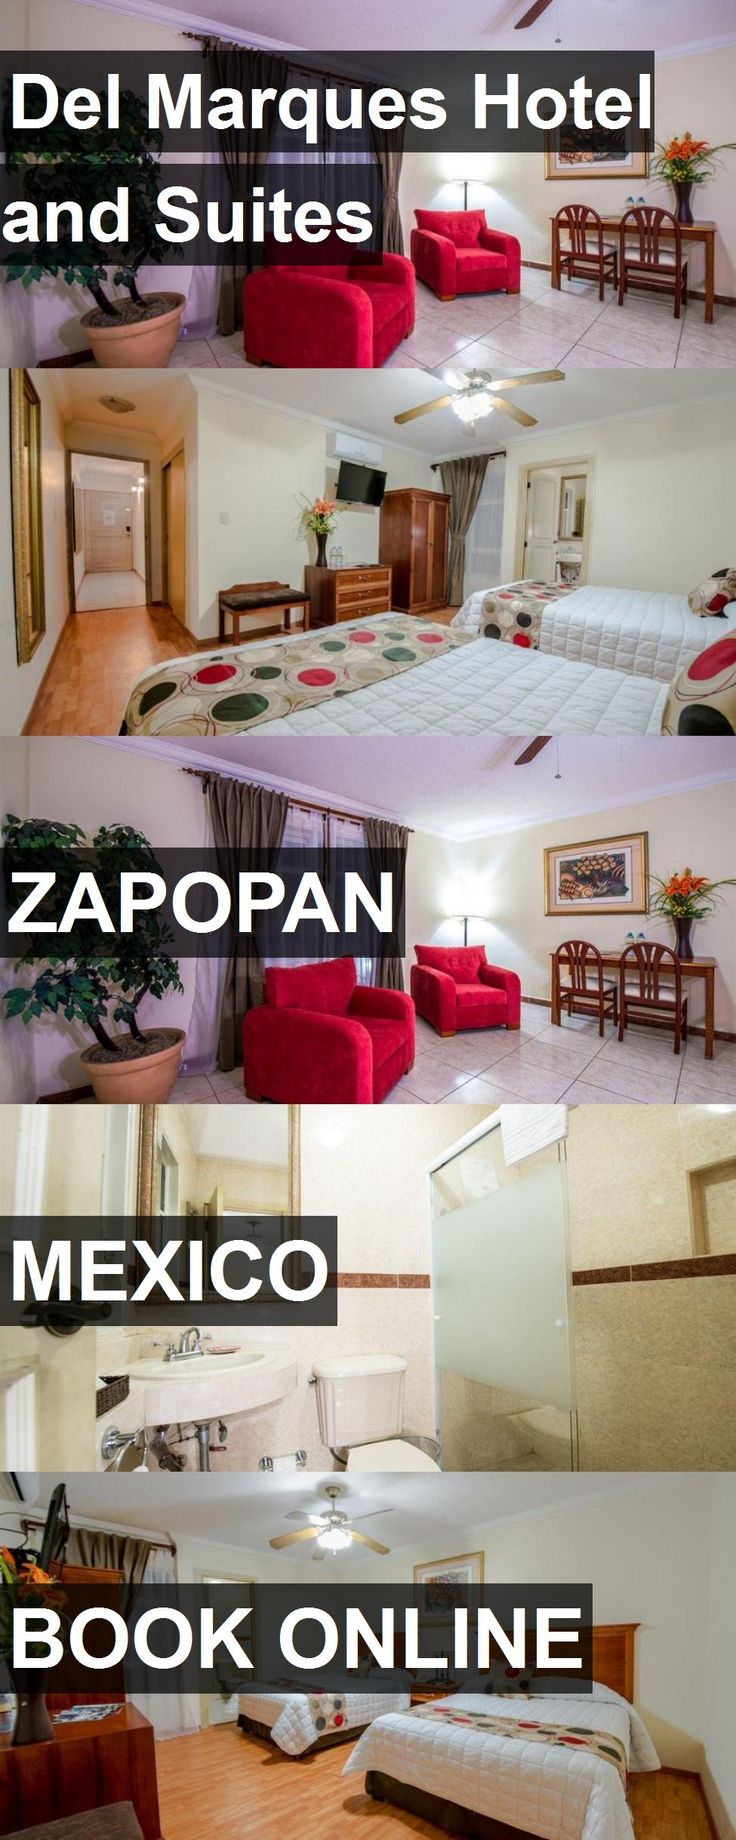 Del Marques Hotel and Suites in Zapopan, Mexico. For more information, photos, reviews and best prices please follow the link. #Mexico #Zapopan #travel #vacation #hotel